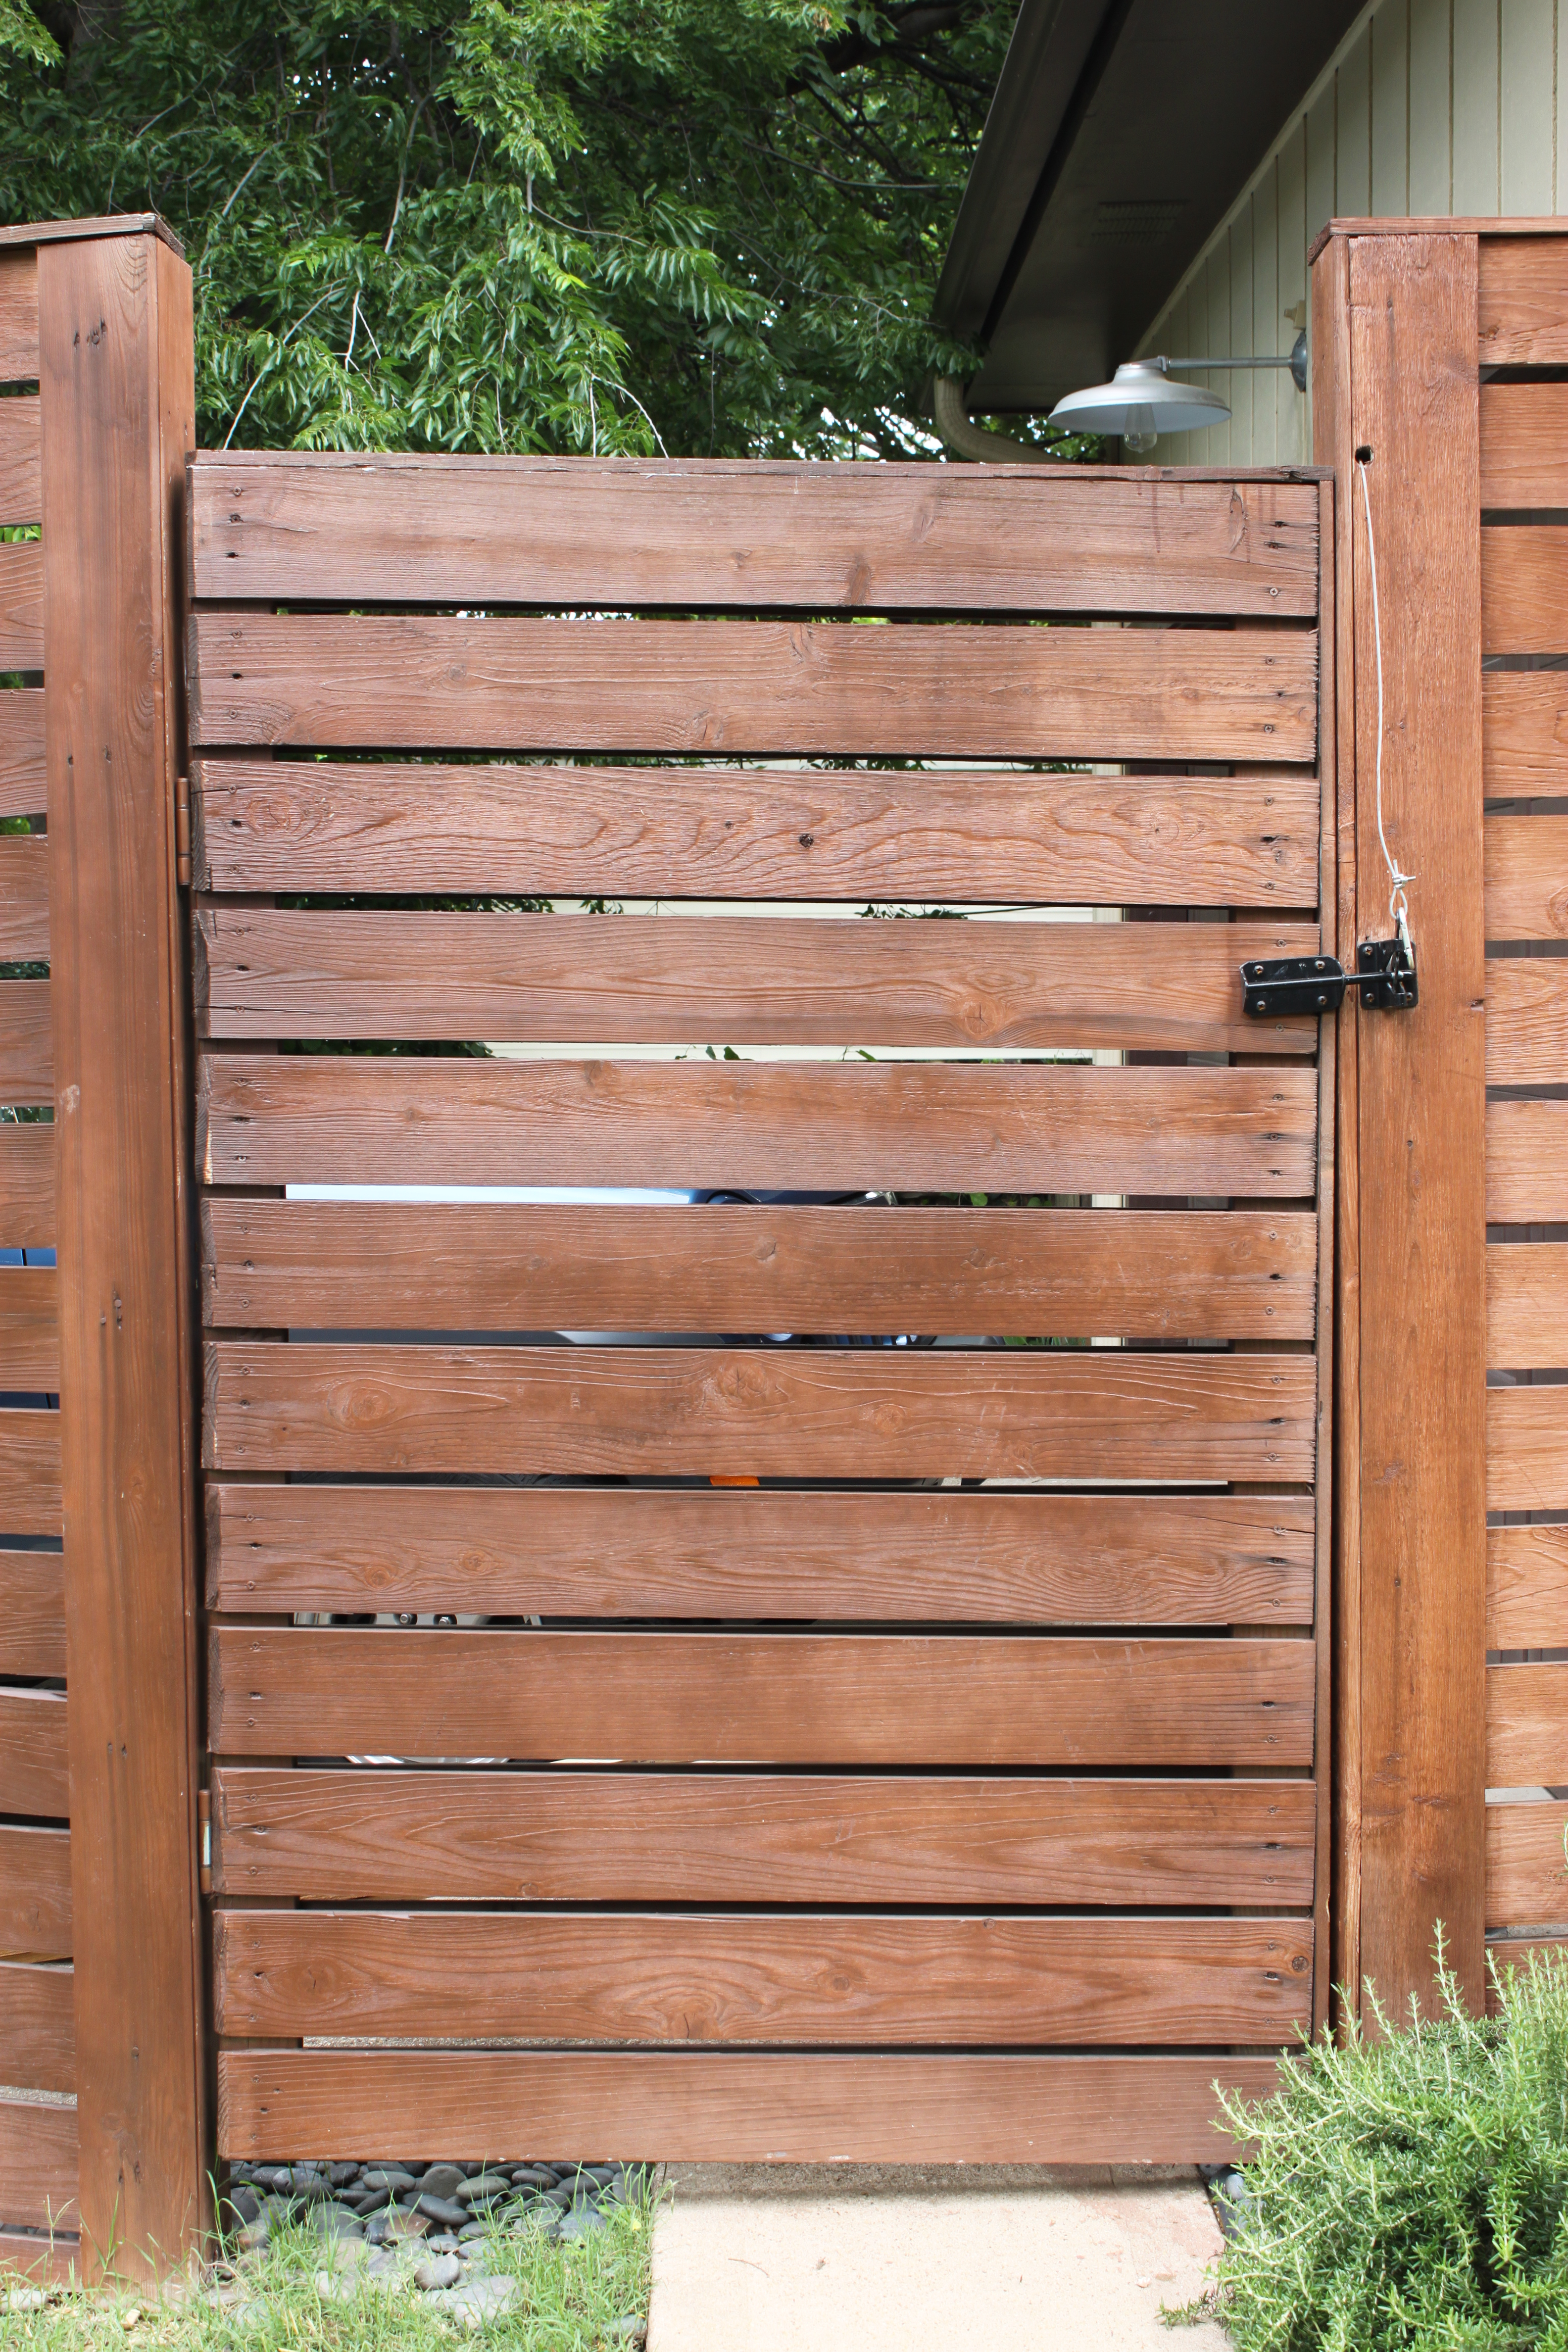 Wood Fence Door Design wood fence door design wood fence gate and fence gates fence g selfieword best concept The Gate Before Short And Drooping To The Right